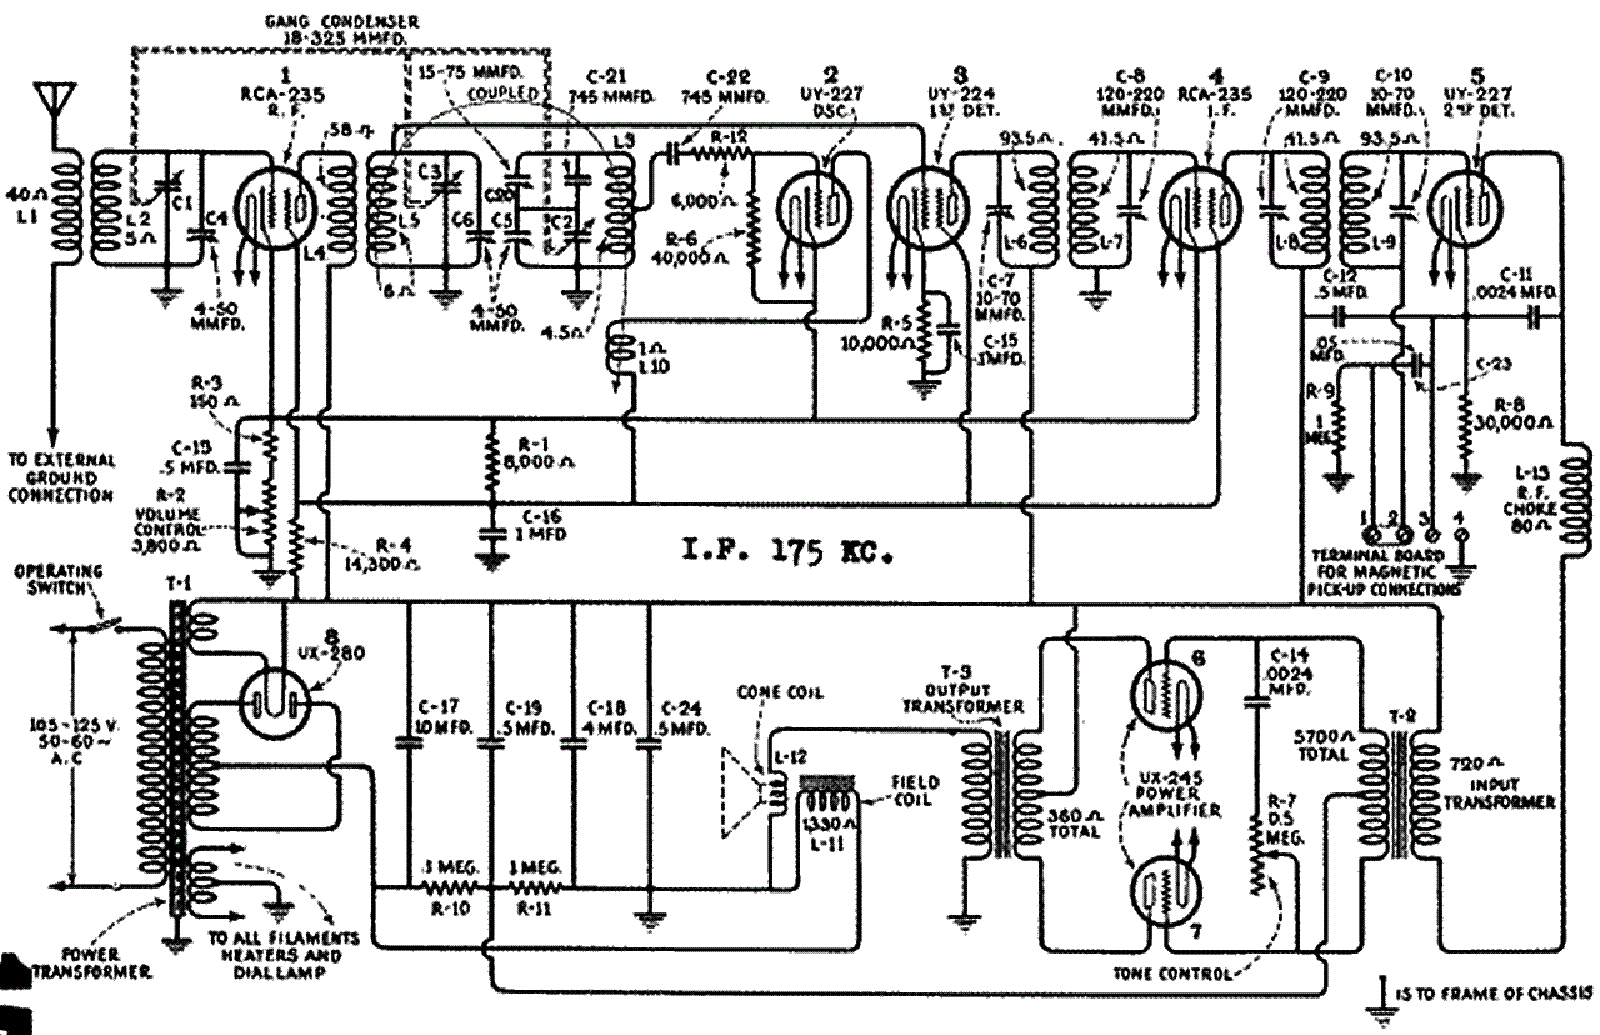 RCA R7 AC RADIO SCH Service Manual download, schematics